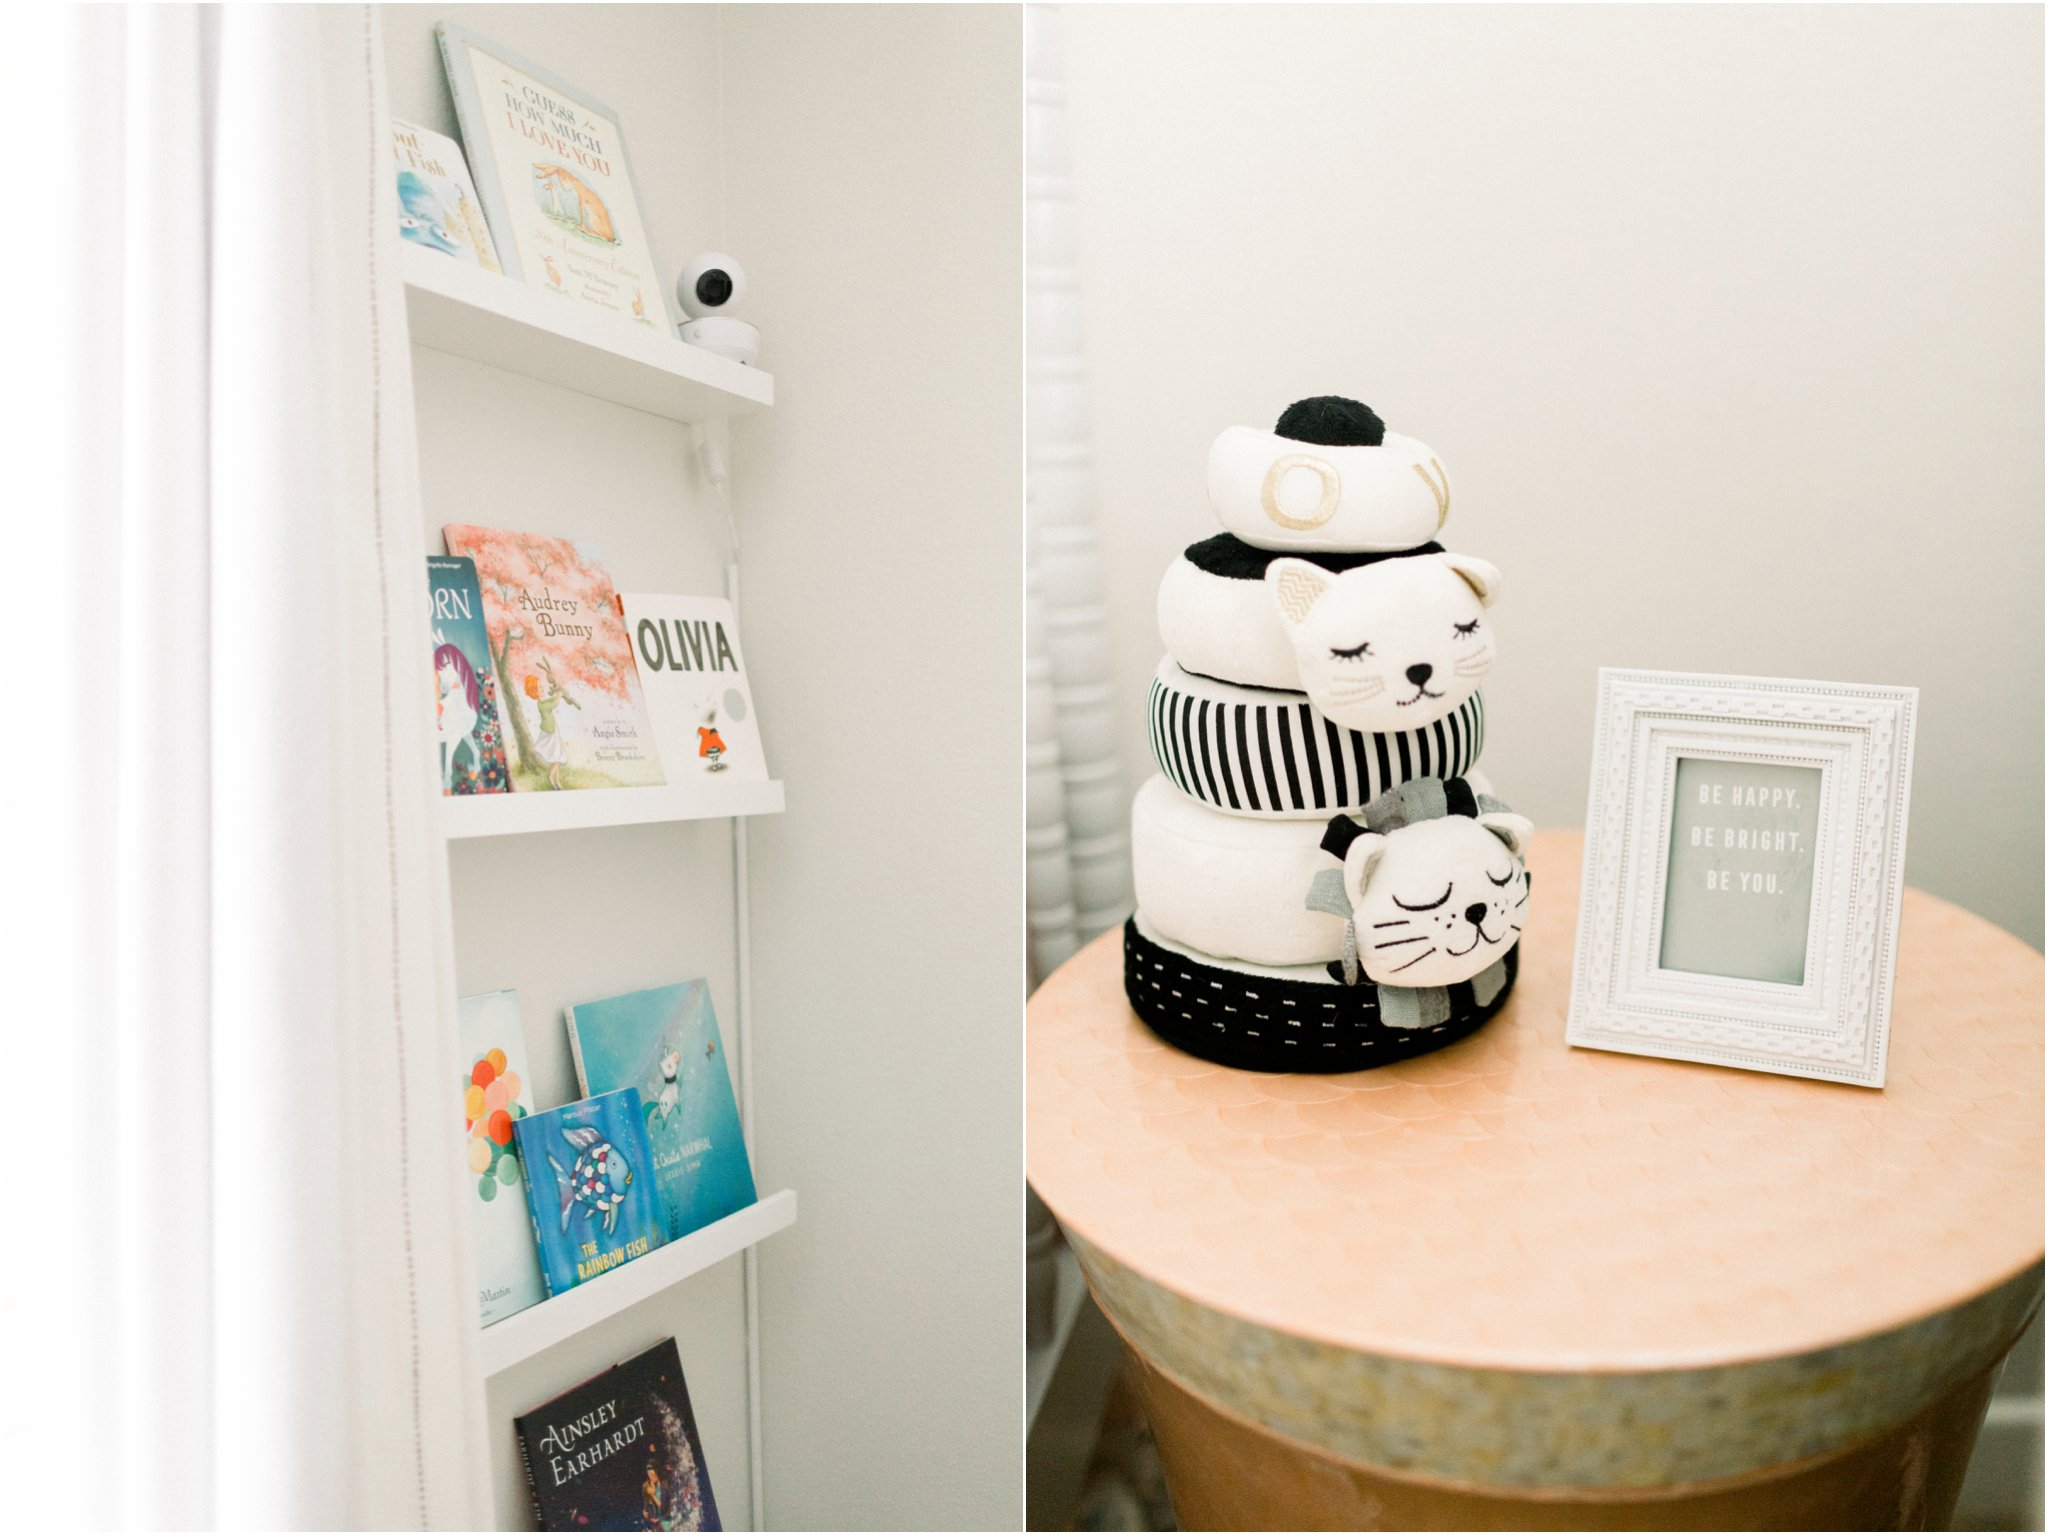 Owlet Baby Monitor - California newborn photographer shares her baby must haves!